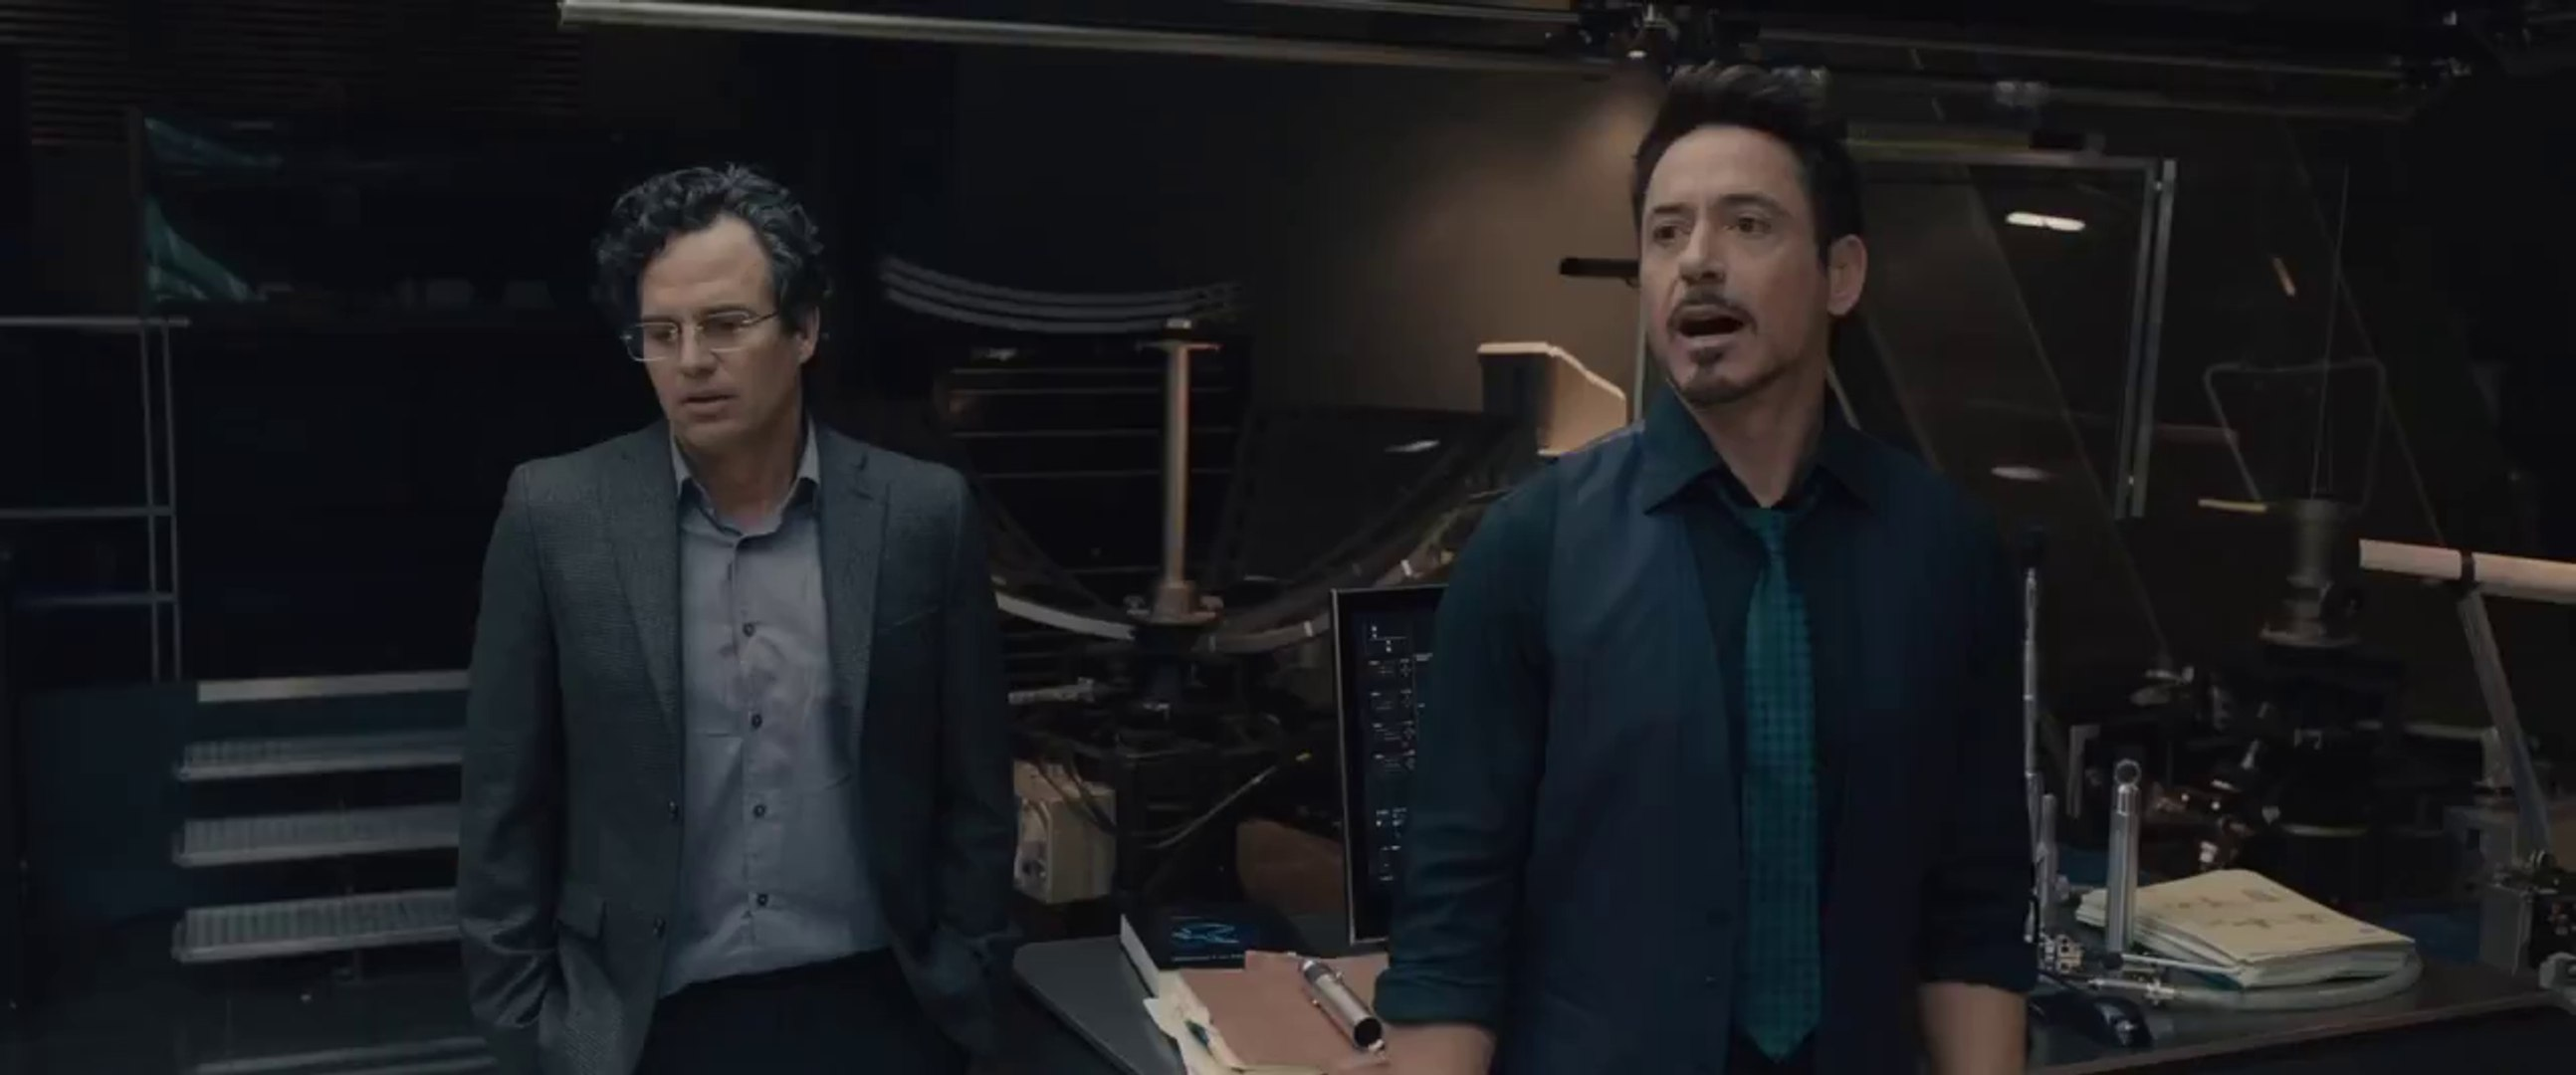 Avengers  Age of Ultron Movie Clip - We're the Avengers (2015) - Avengers Sequel HD